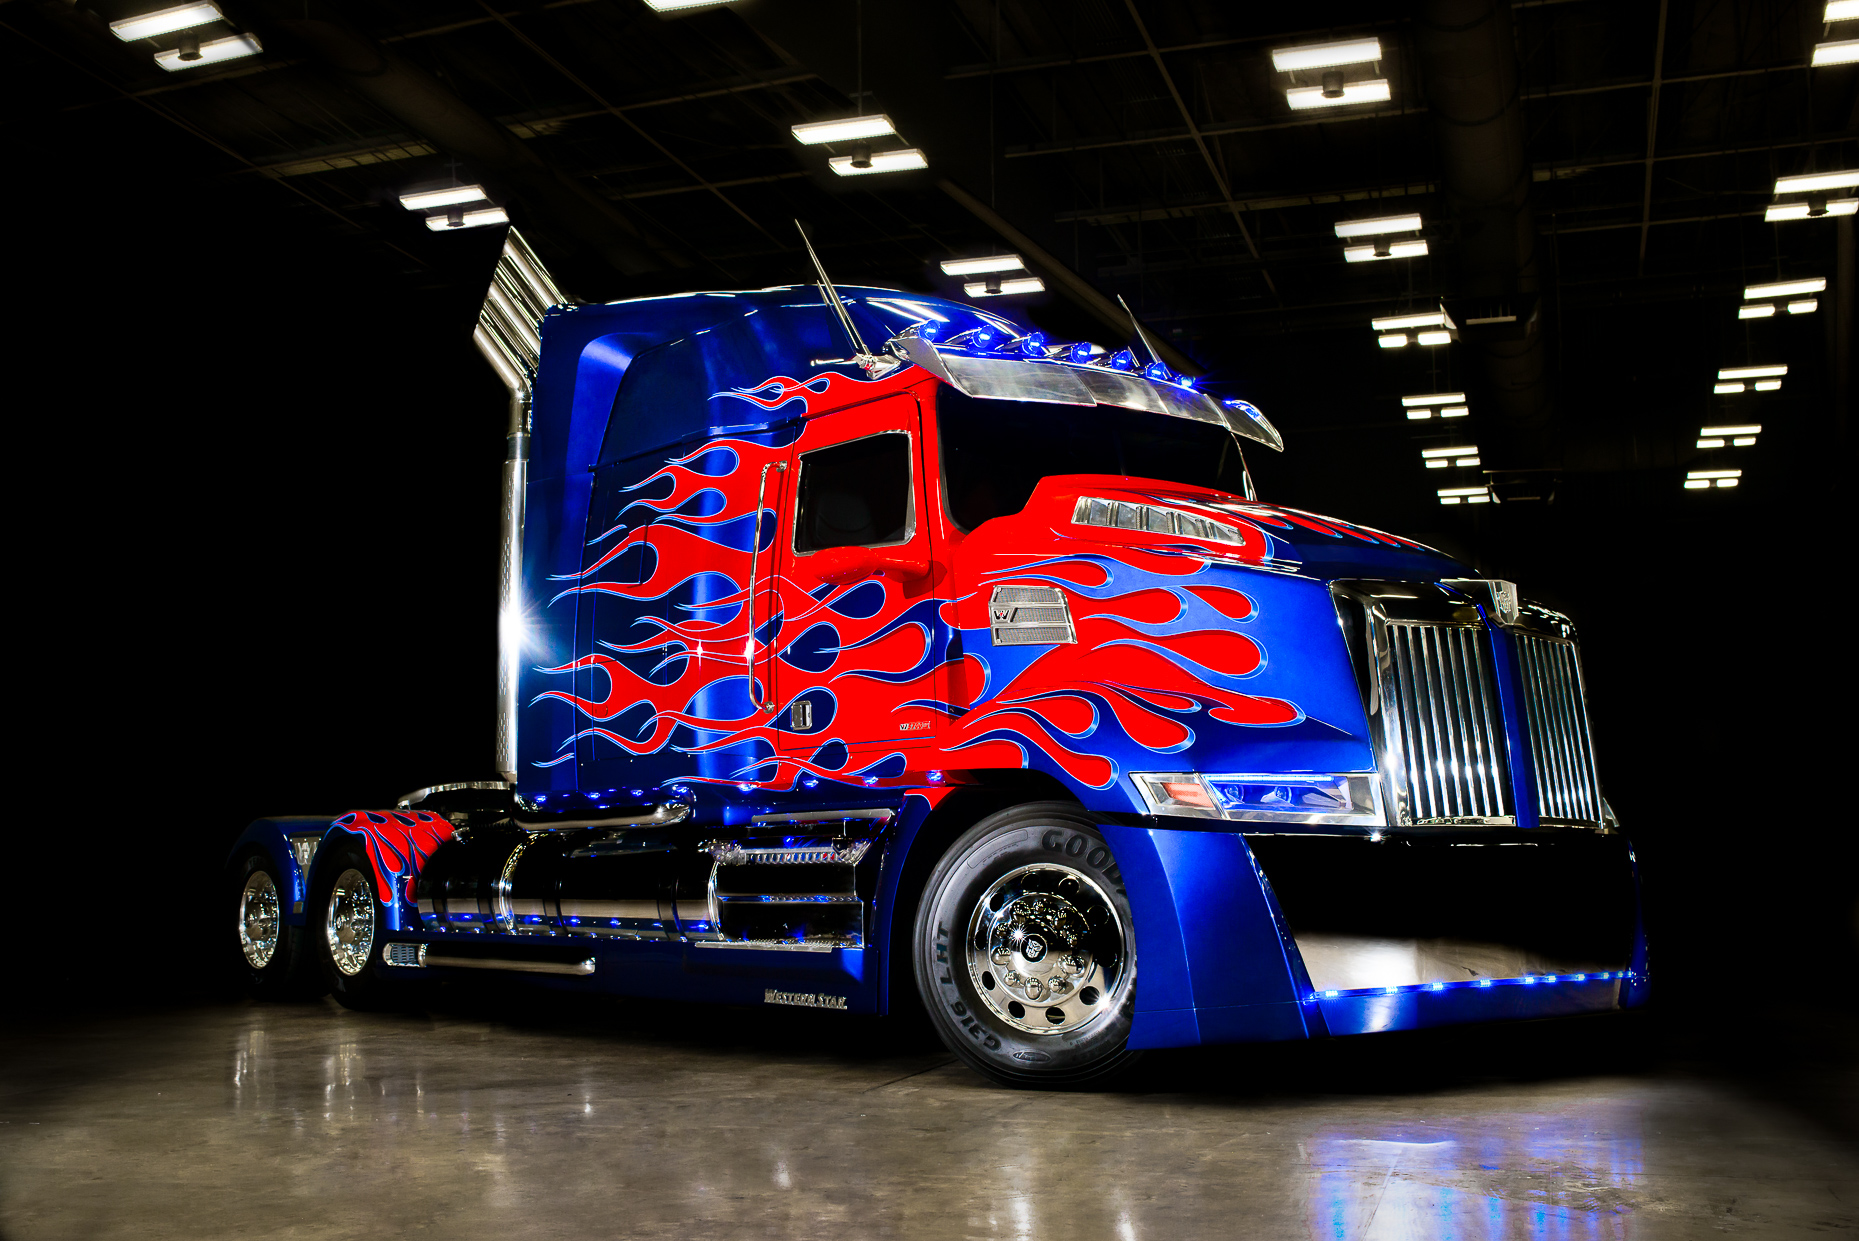 Austin-Commercial-Photographer-Optimus-Prime-Car2go